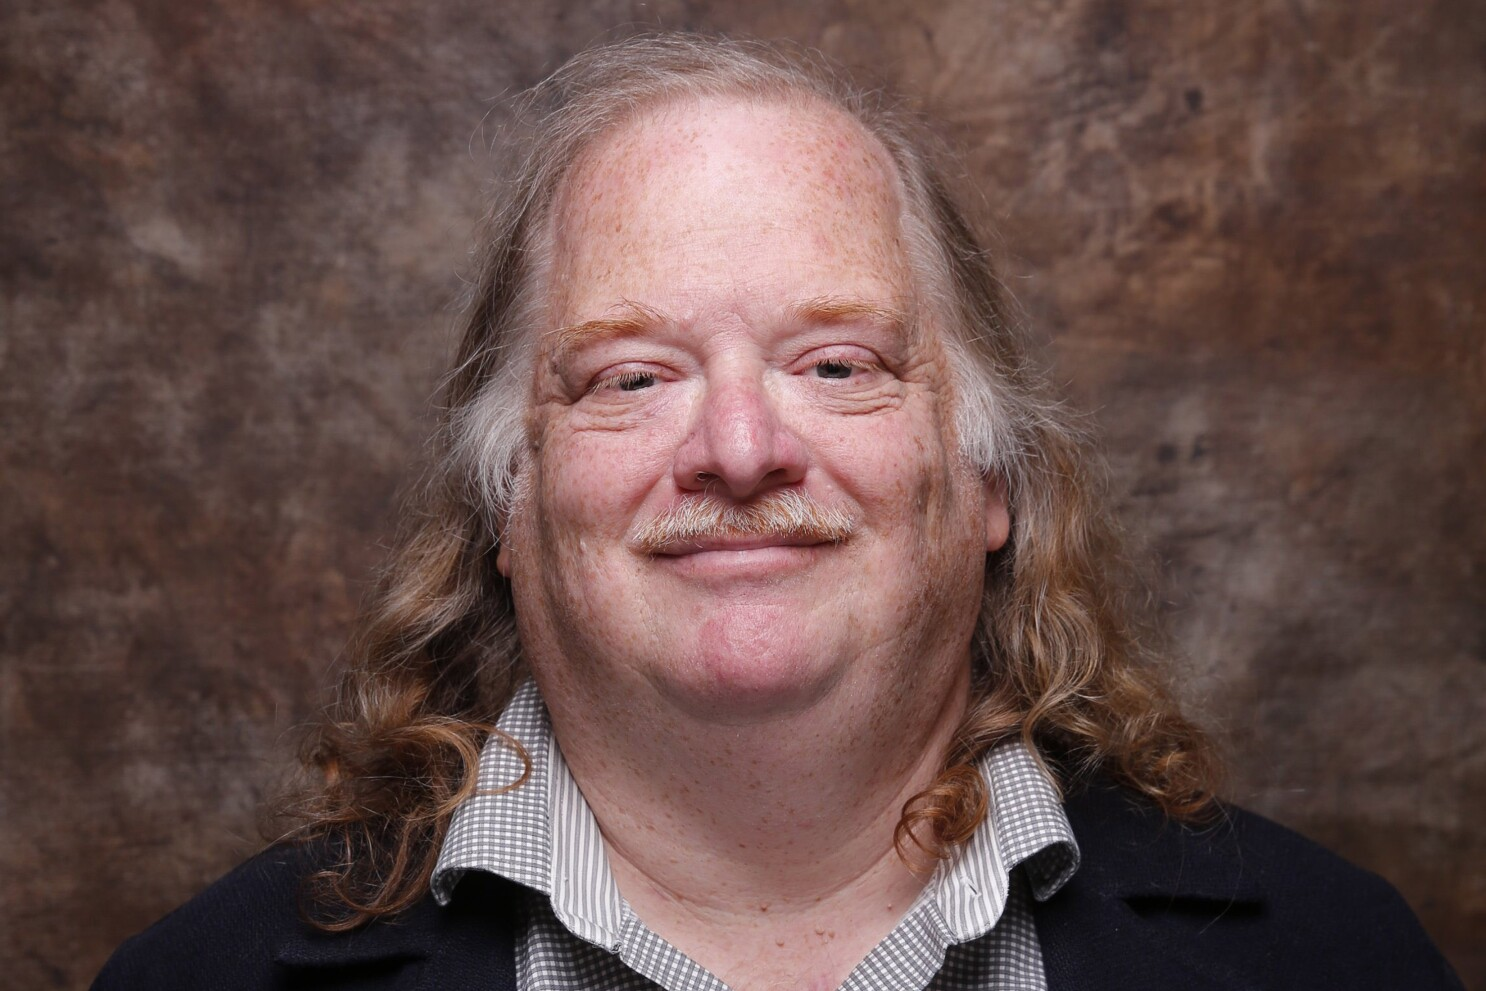 Remembering Jonathan Gold a year after his death - Los Angeles Times